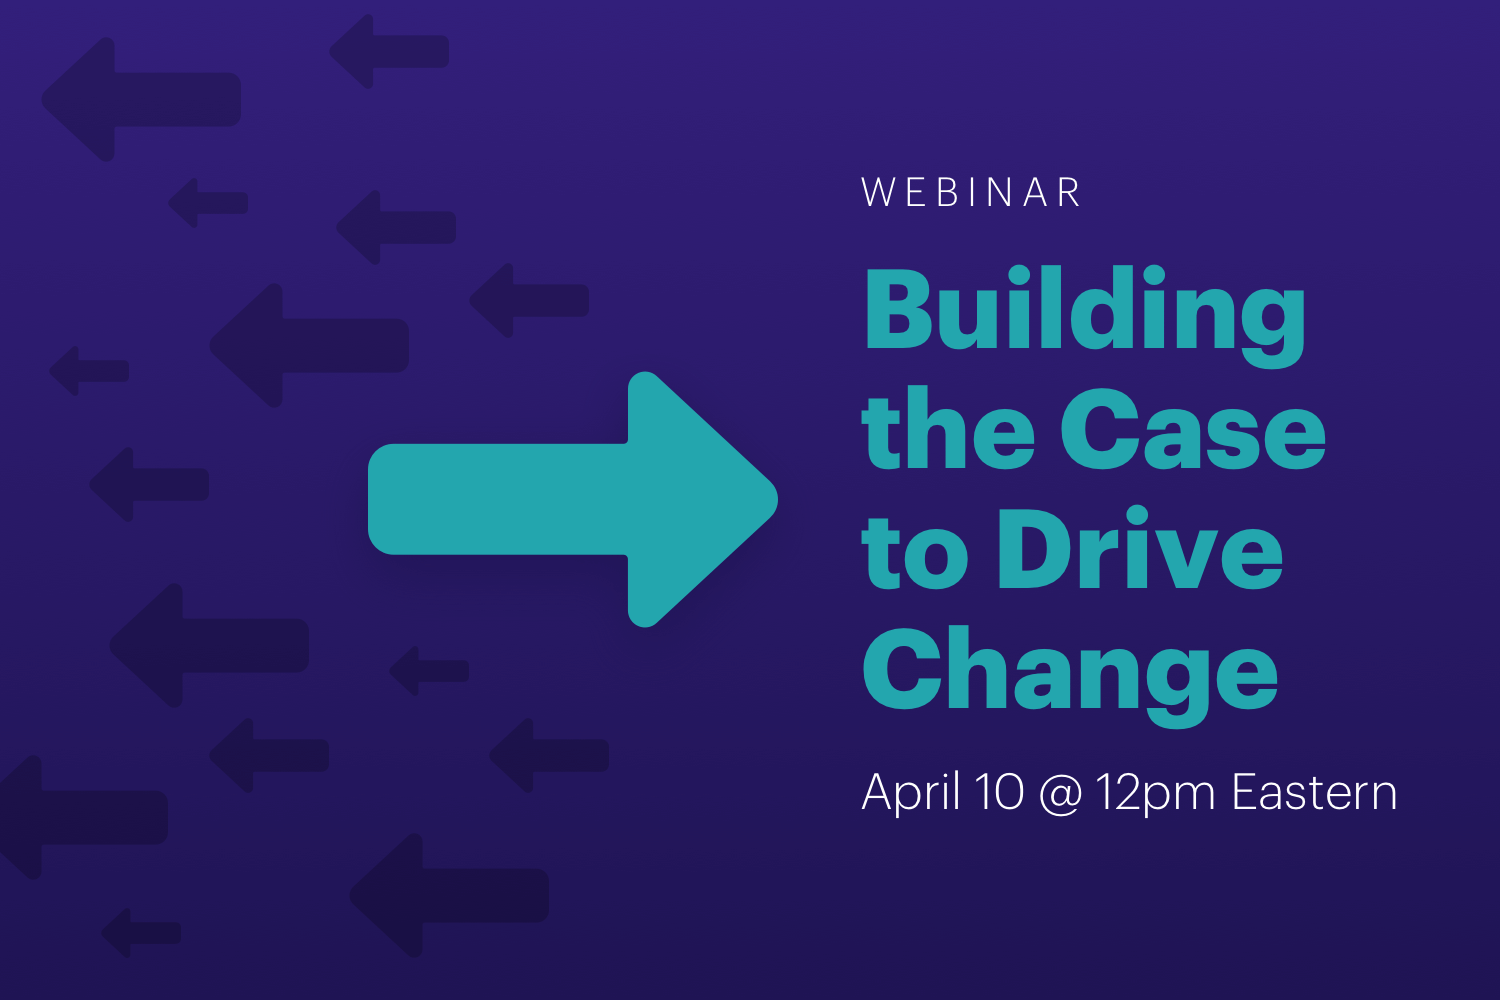 Build the Case to Drive Change Cerkl U Webinar graphic